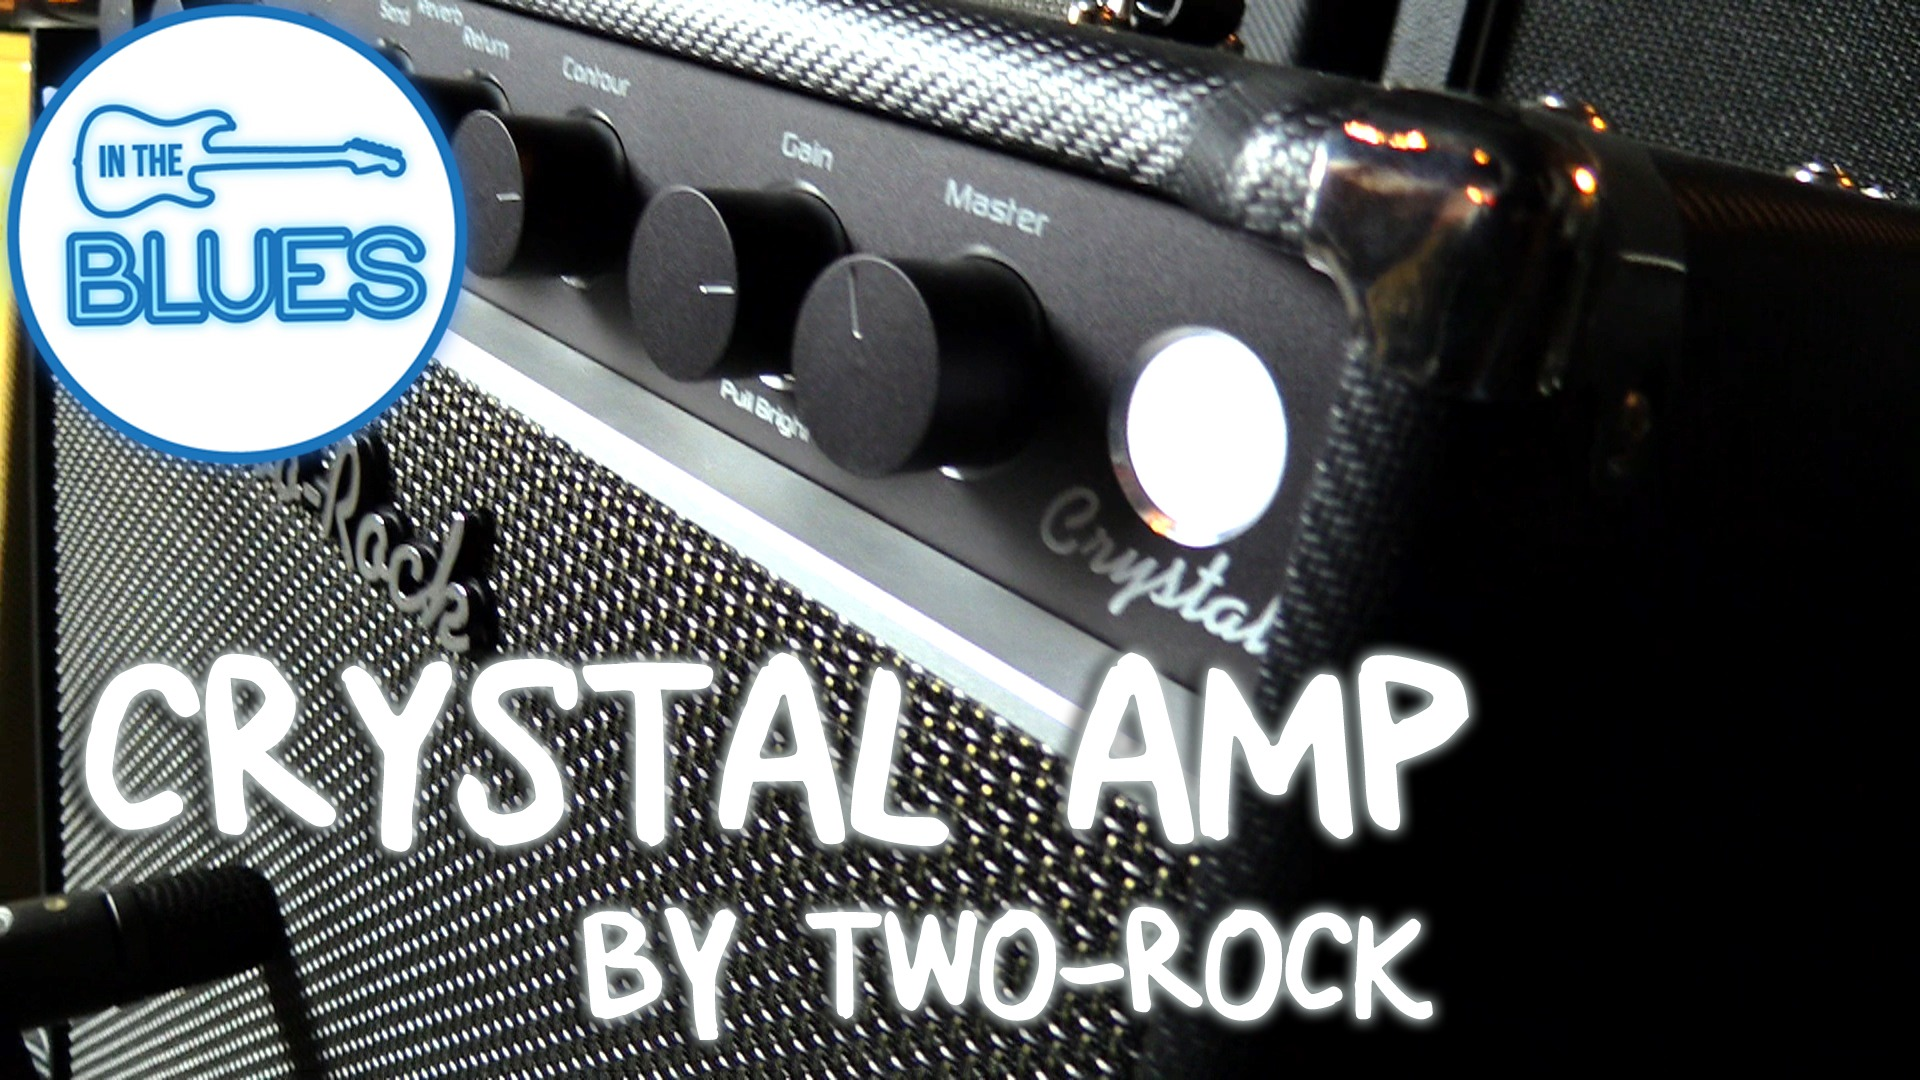 Two-Rock Crystal Amplifier